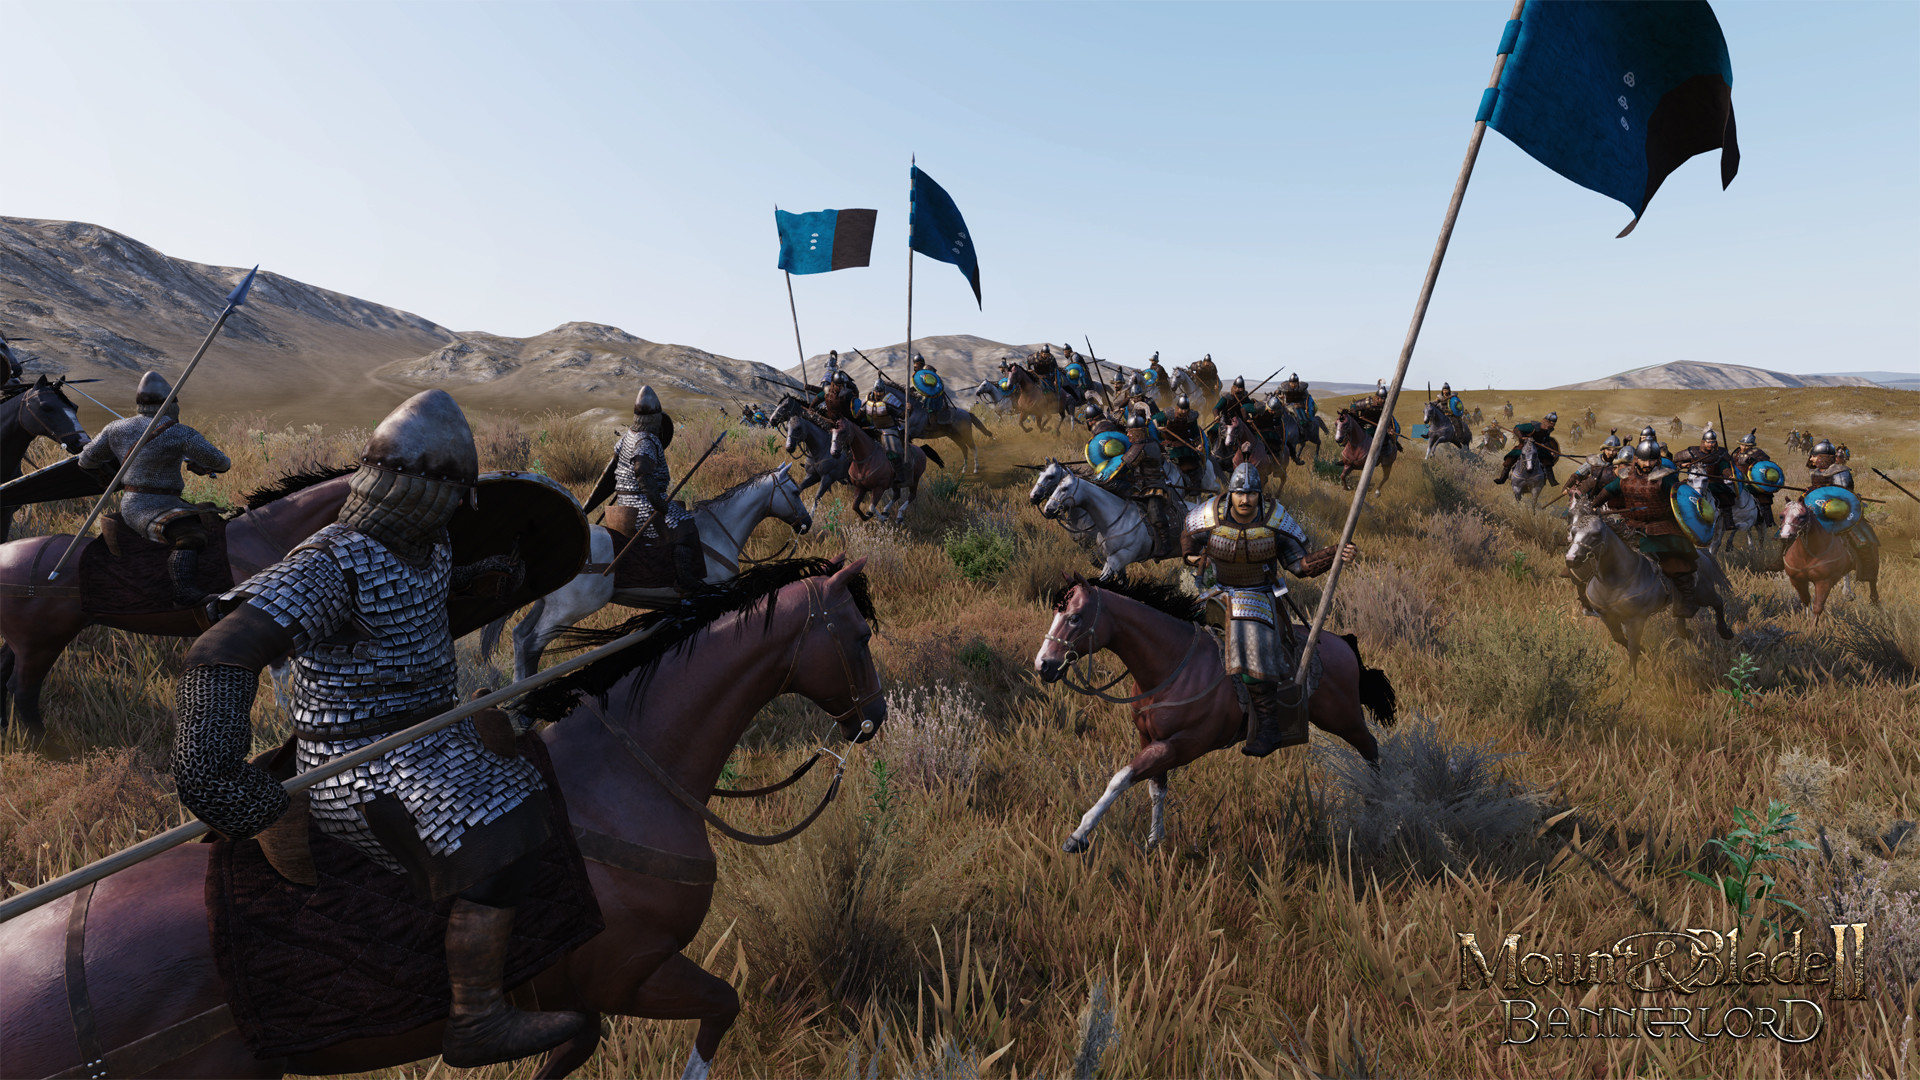 Mount Blade 2 Bannerlord Arrives On March 31 In Early Access